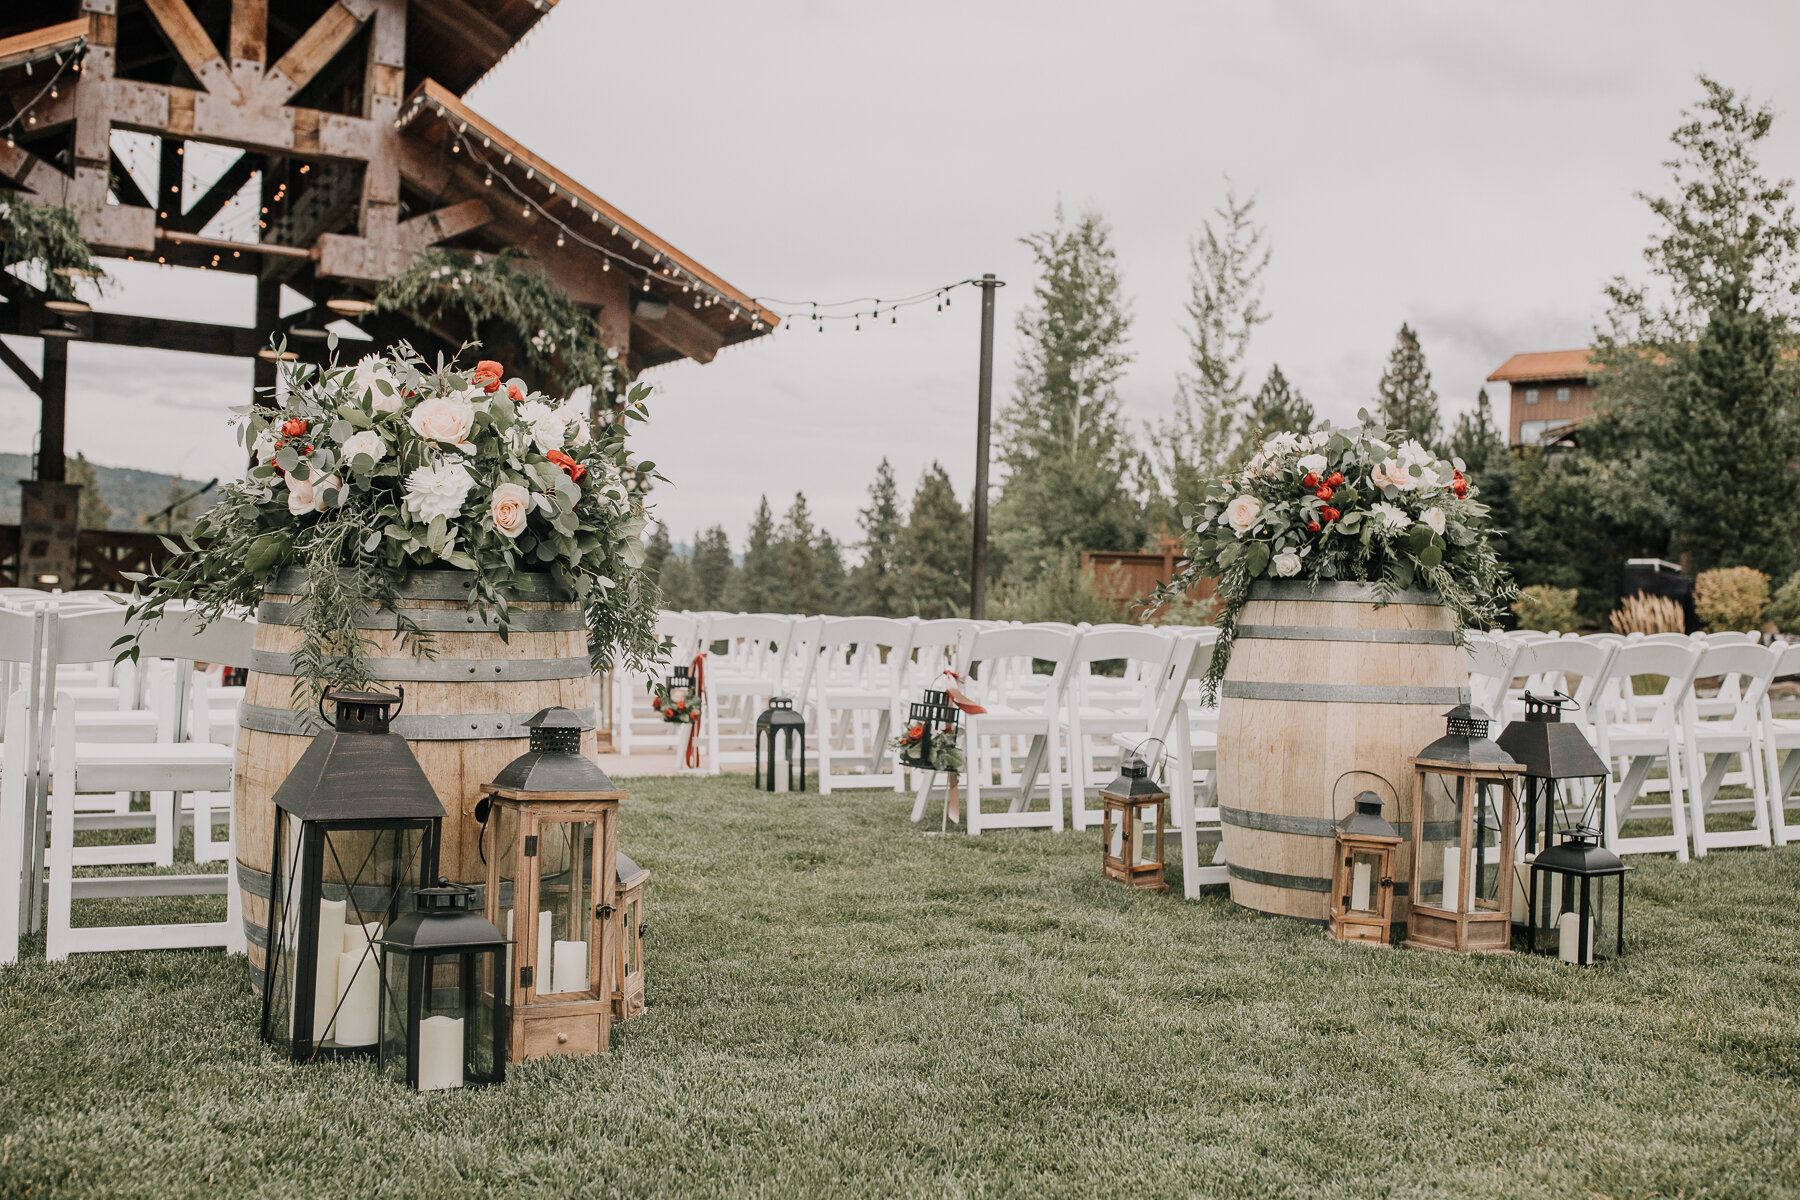 0599Swiftwater Cellars Wedding_Cle Elum Wedding_Montana Wedding Photographer_Kat & Kyle_September 15, 2018-1024.jpg